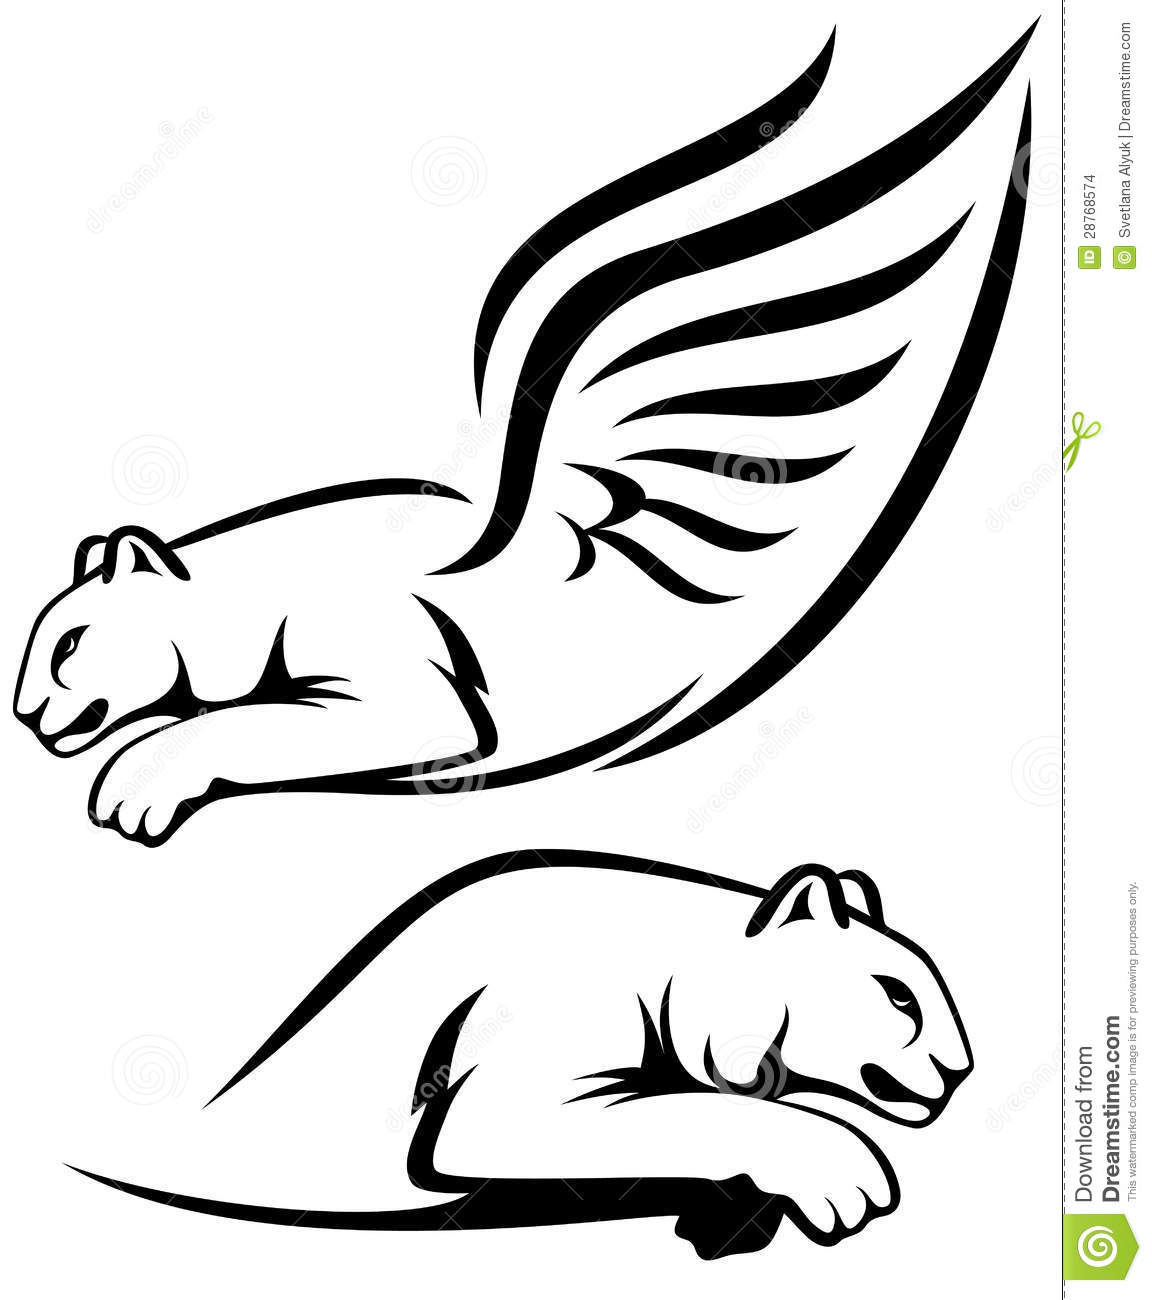 Winged Lions Design Stock Vector Illustration Of